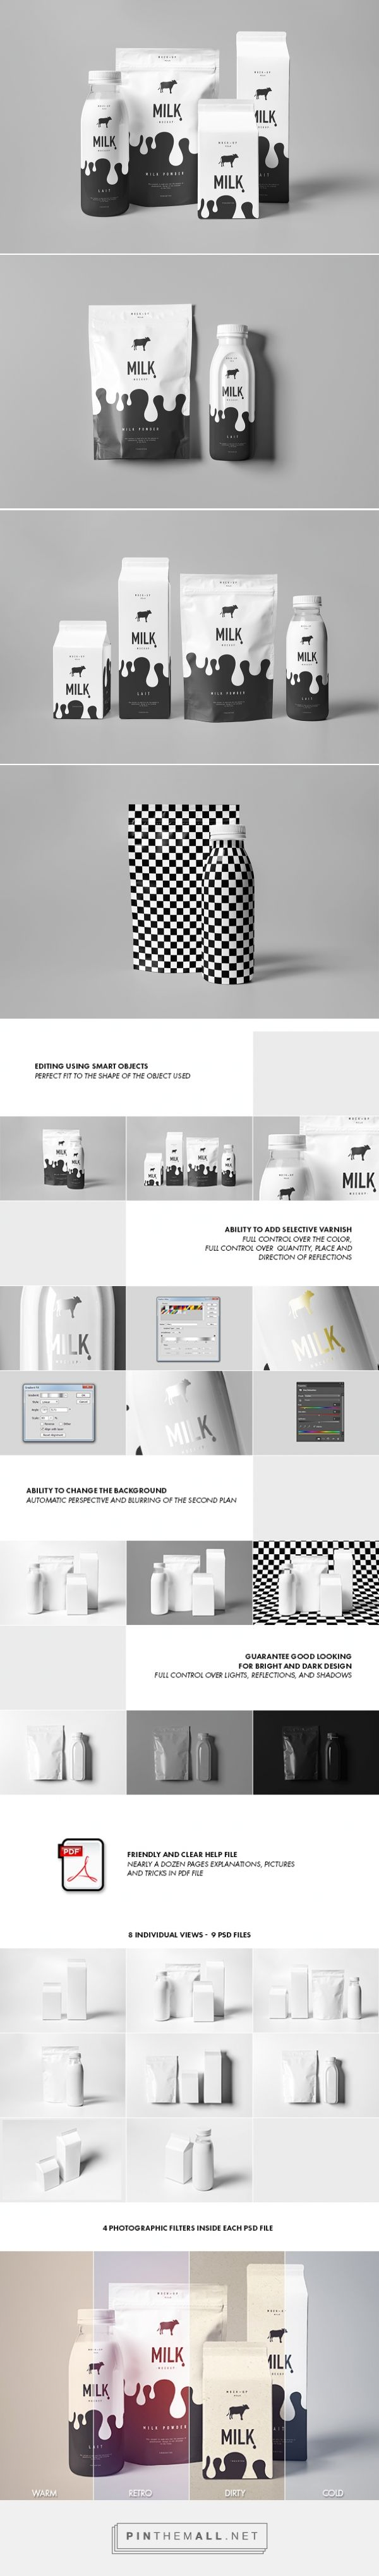 Milk Mock-up on Behance by yogurt86 Design Studio curated by Packaging Diva PD. Love it packaging and hope it becomes real : )